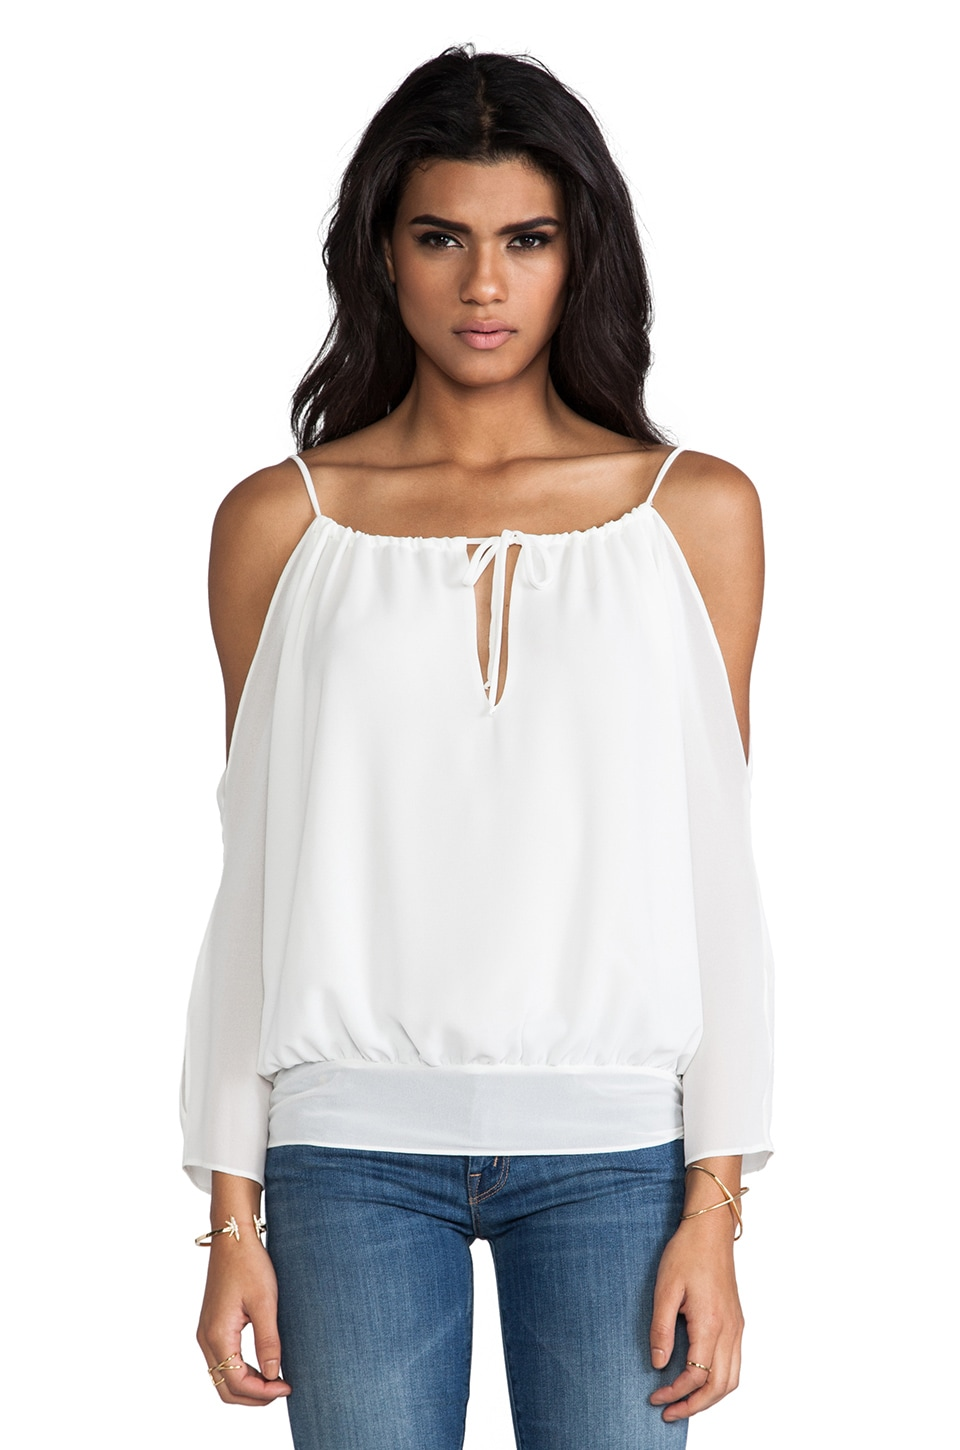 Boulee Liana Top in White